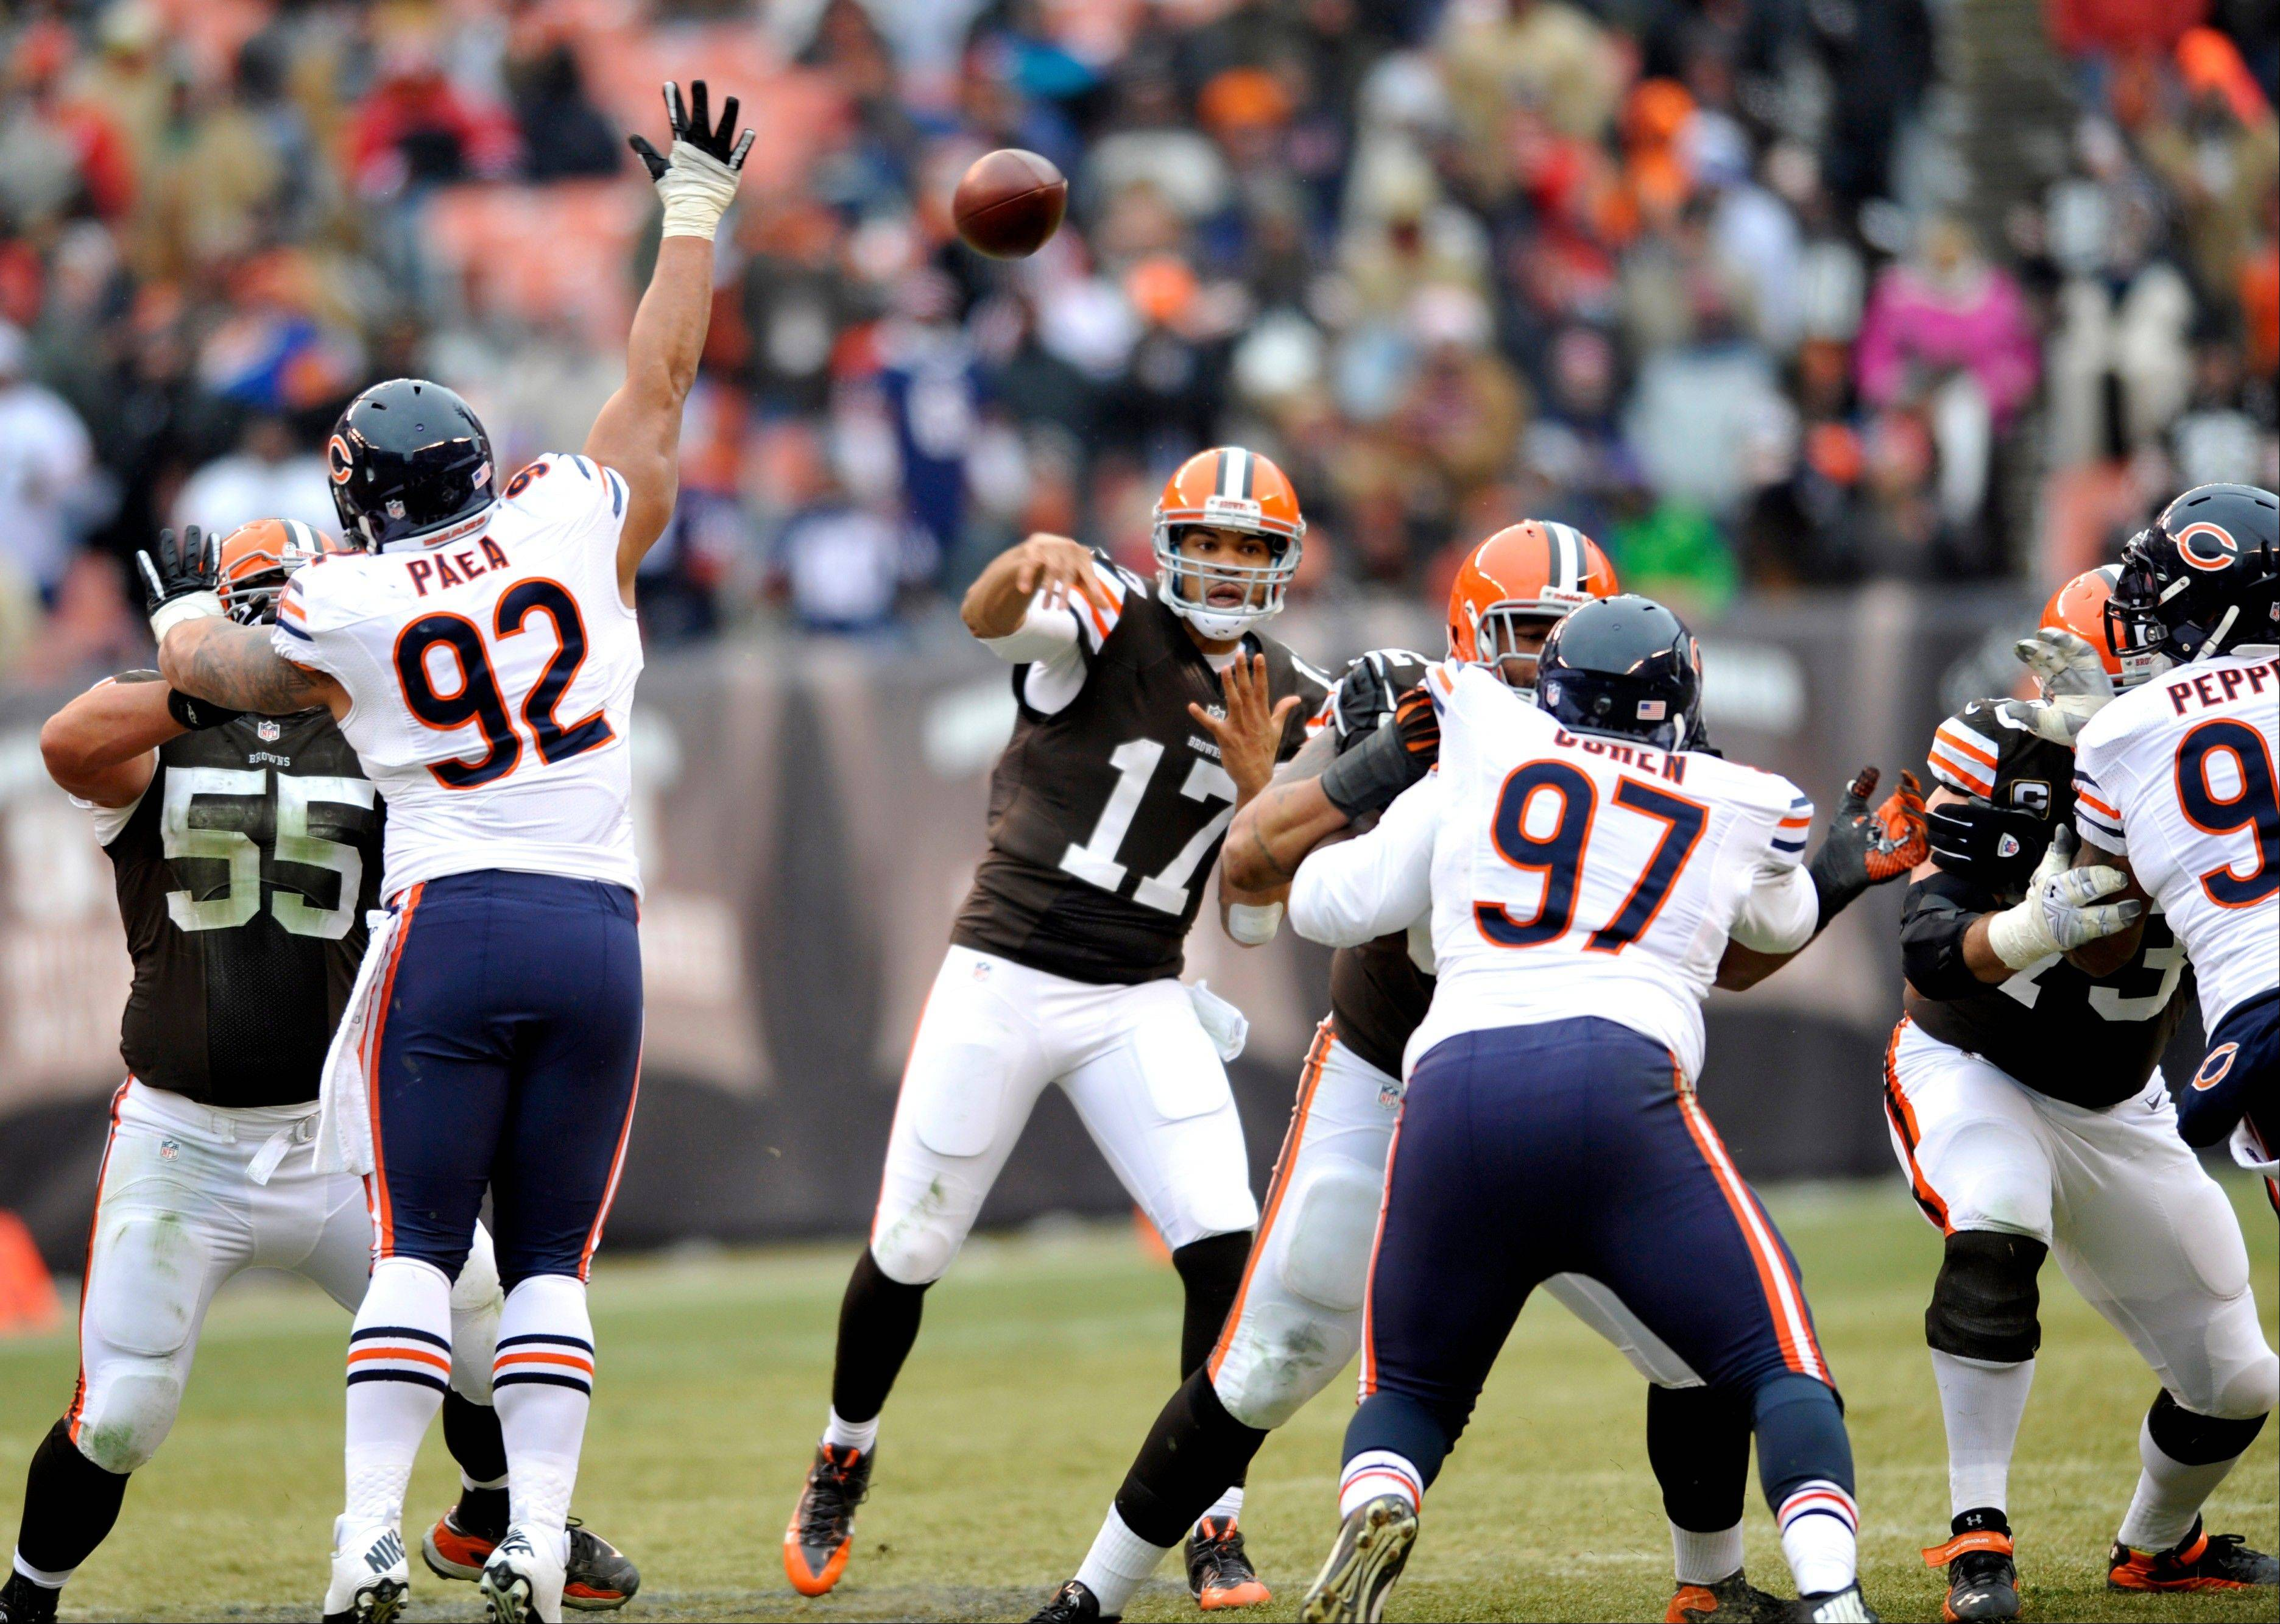 The Bears� defense held quarterback Jason Campbell and the Browns� offense to 10 points until a late TD pass Sunday in Cleveland.